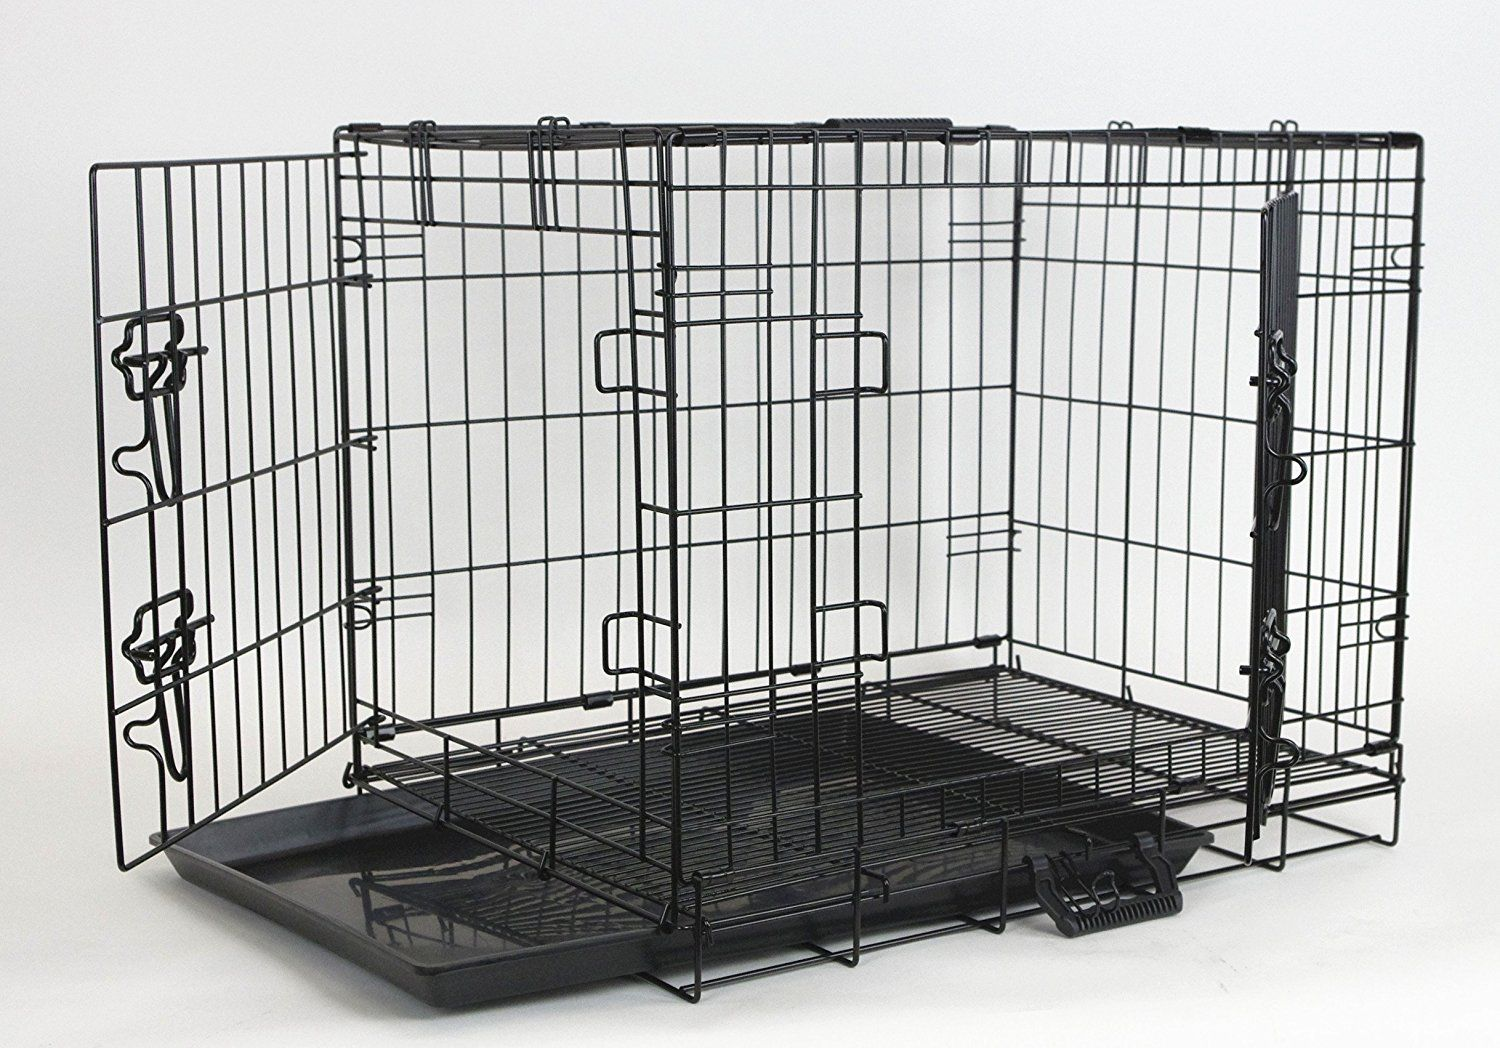 Homey Pet Economic 36 42 48 Wire Folding Cage With Pull Out Tray Startling Review Available Here Dog Crates Large Dog Crate Cat Crate Pets